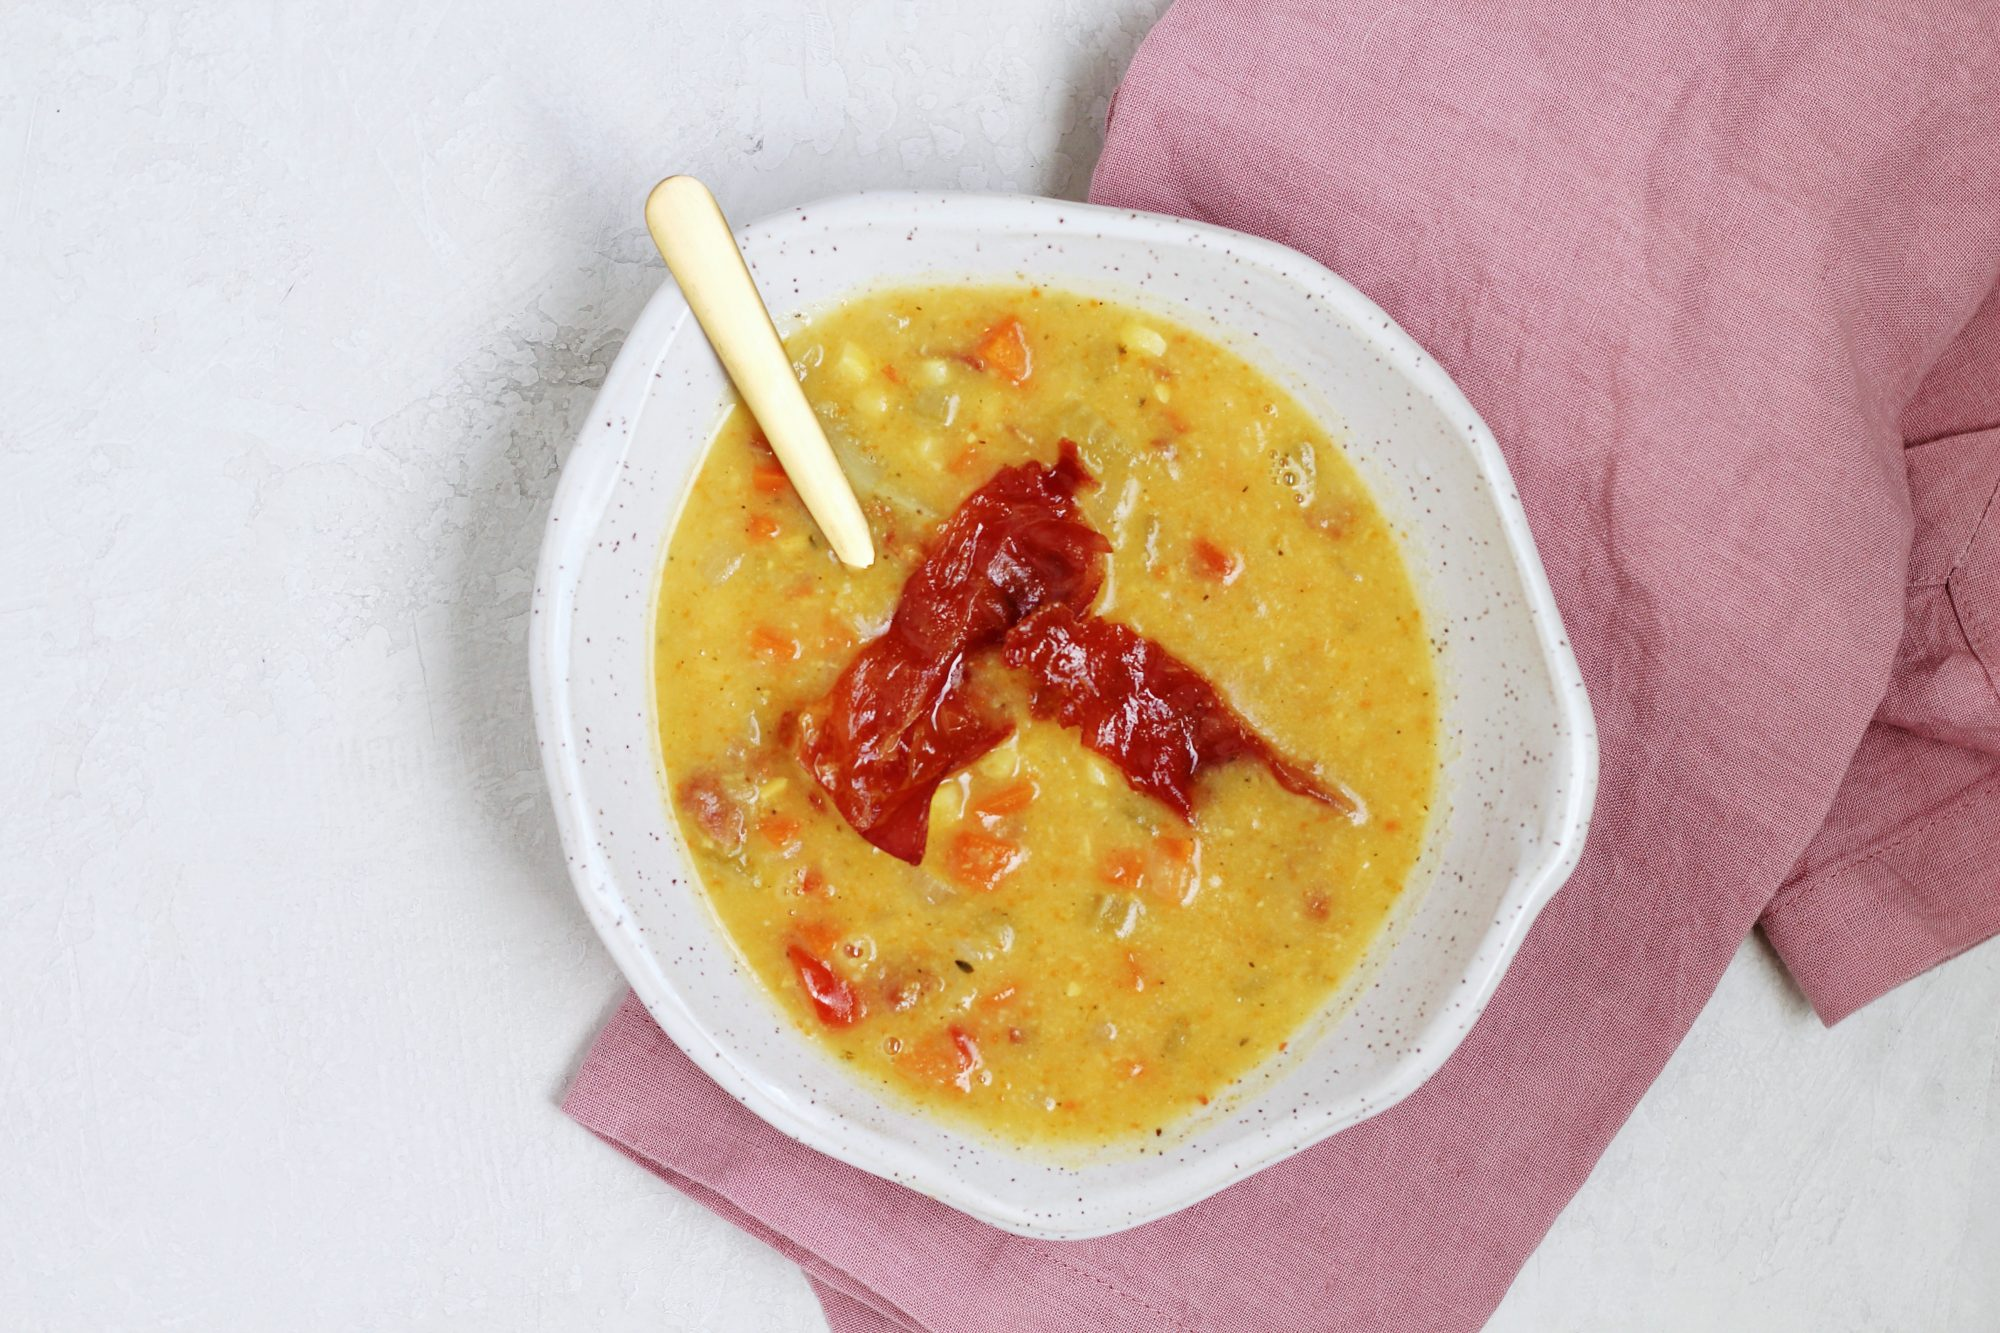 Gluten-free and dairy-free corn chowder made with creamy coconut milk